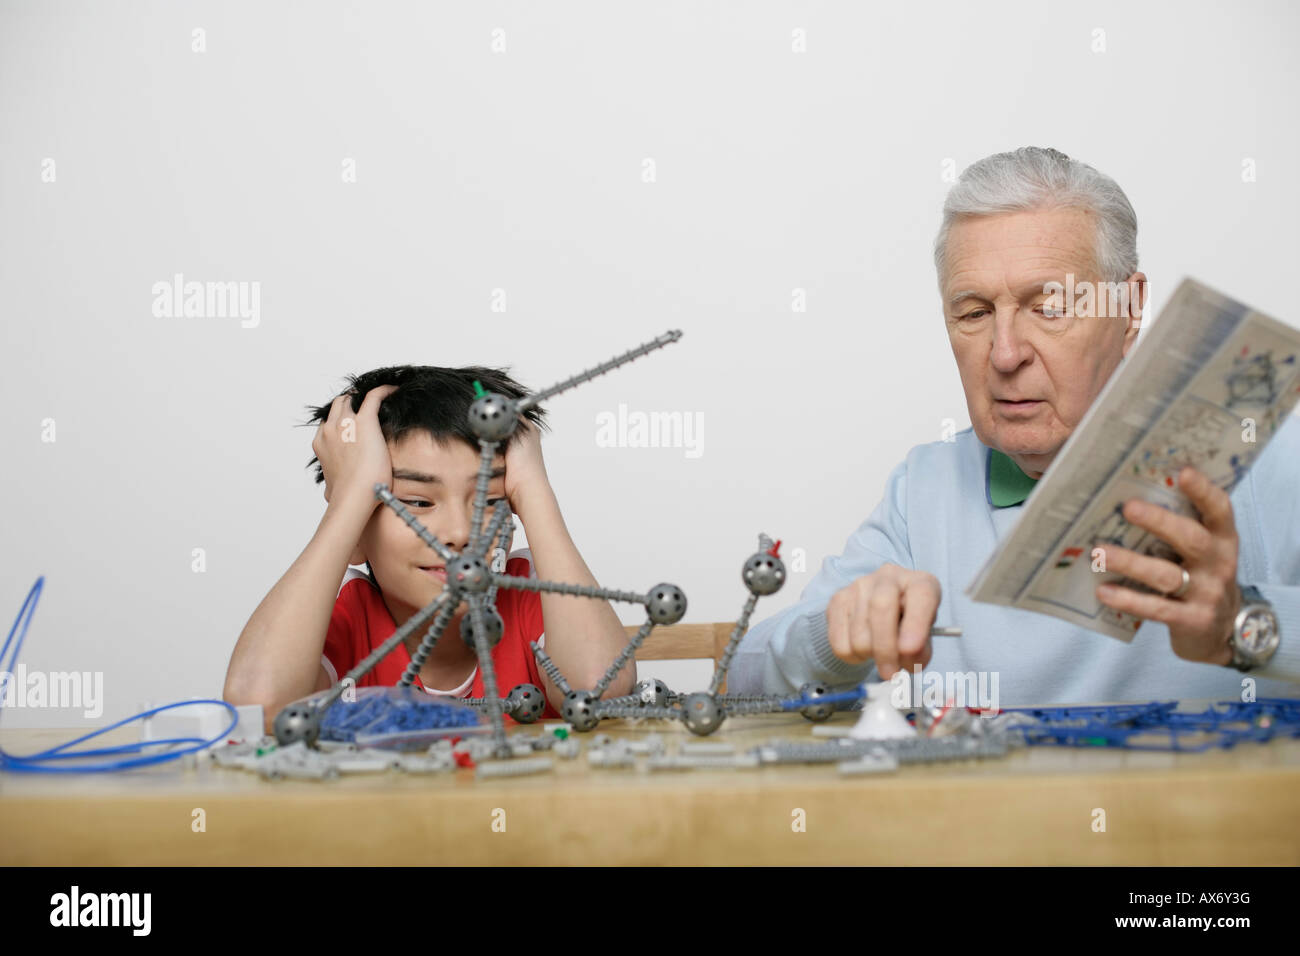 Grandfather and boy playing with a construction kit, fully_released - Stock Image